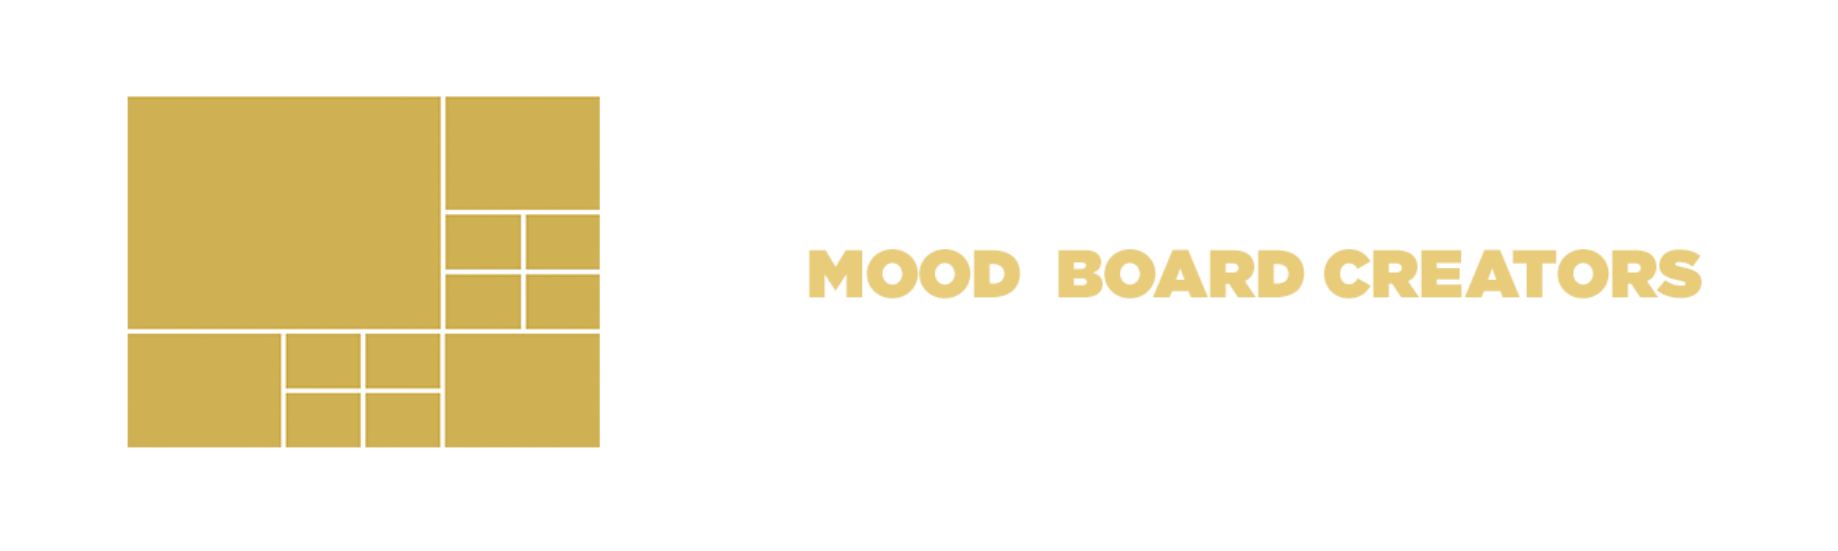 Mood board creators - Order Group - Medium